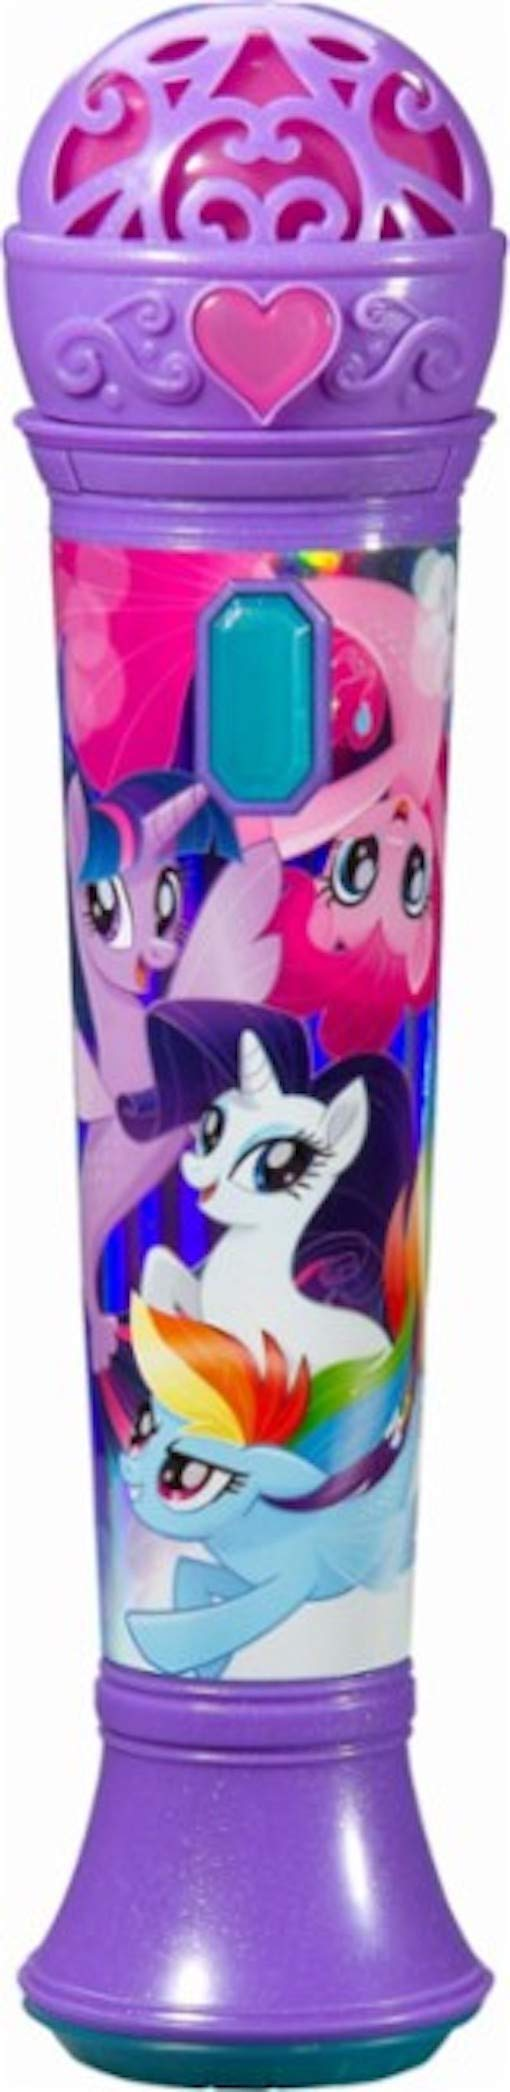 My Little Pony The Movie Sing Along Microphone Purple